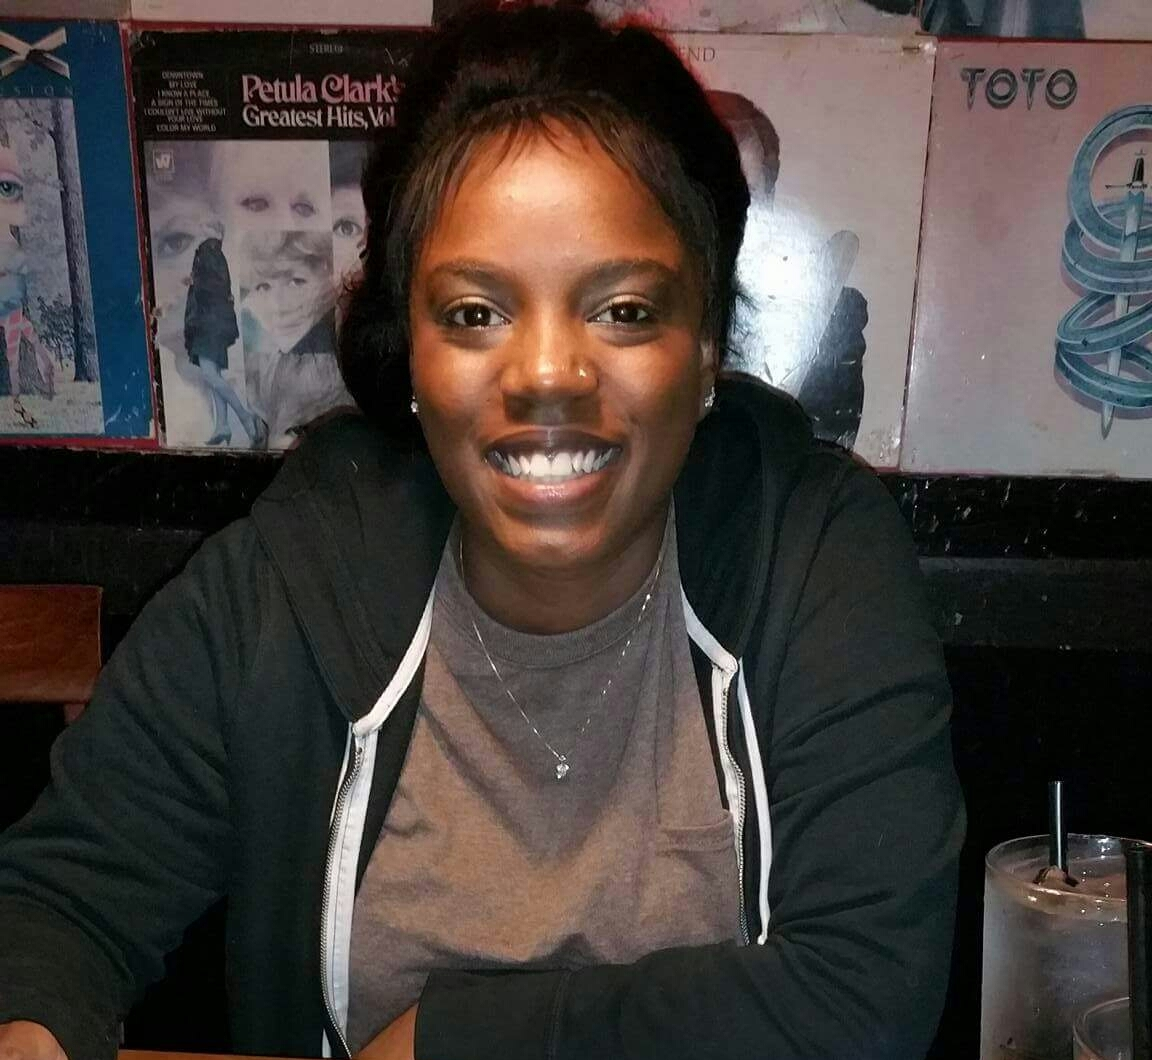 24-year-old, Do You Care? From: CHICAGO, Illinois, United States